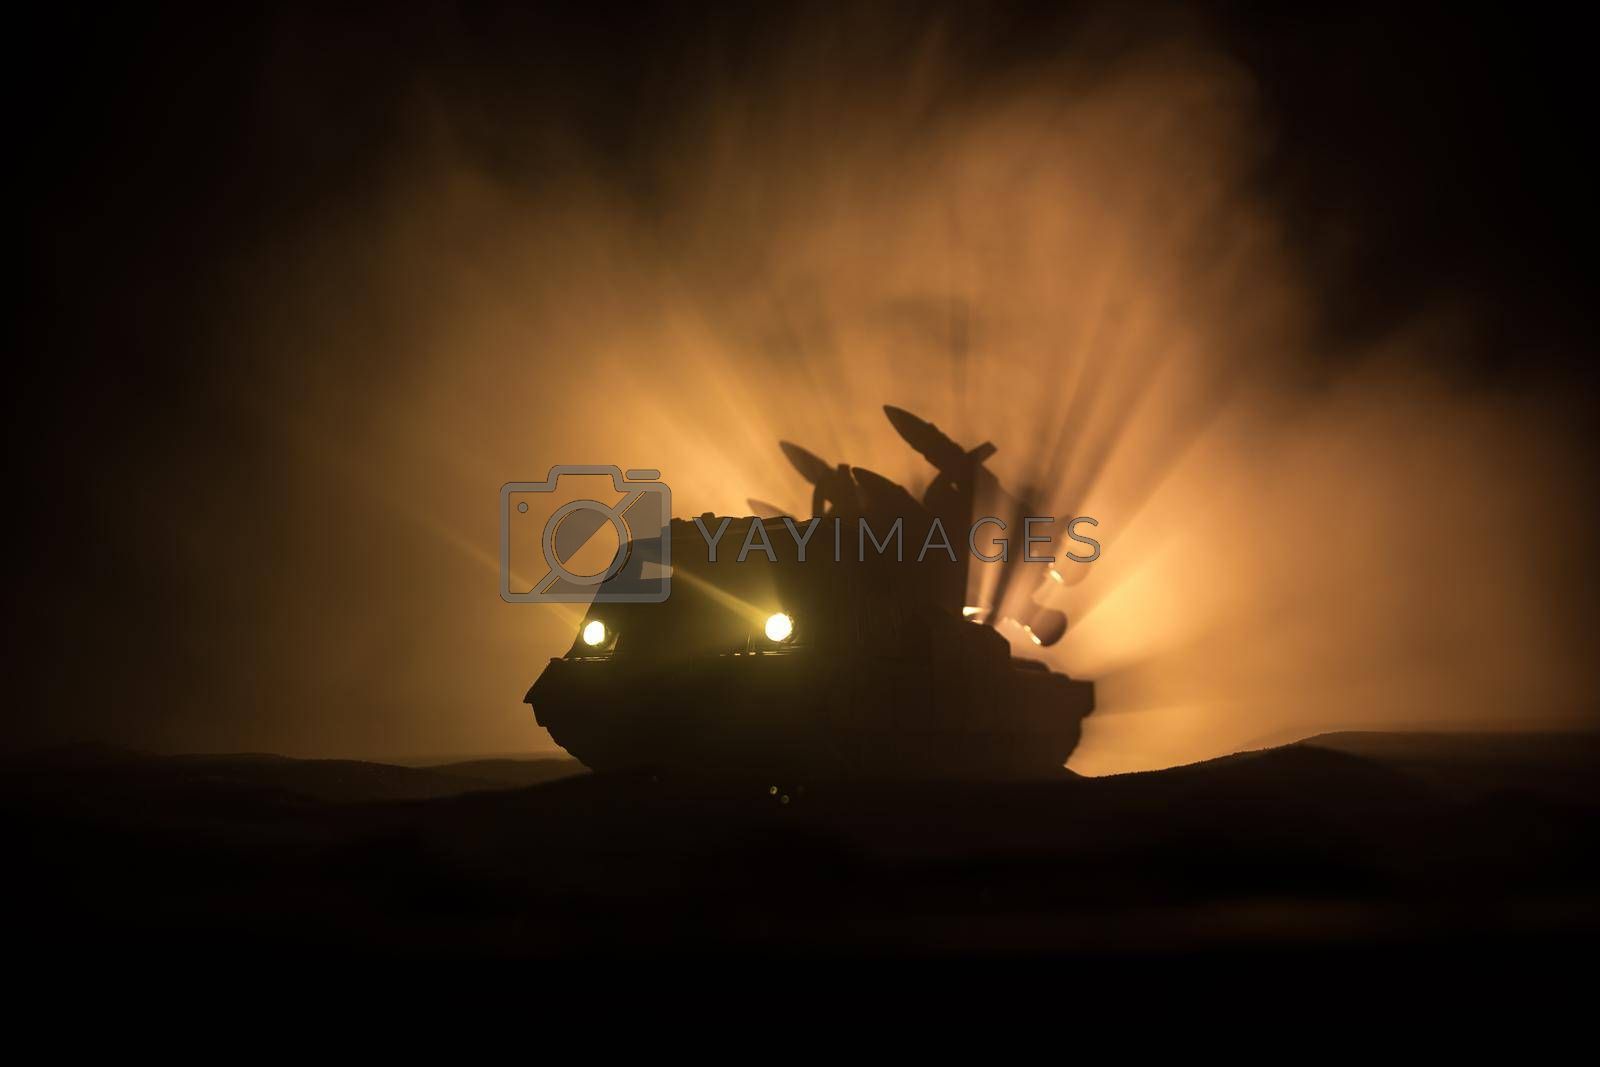 War concept. Battle scene with rocket launcher aimed at gloomy sky at night. Rocket vehicle ready to attack on cloudy war Background. Selective focus